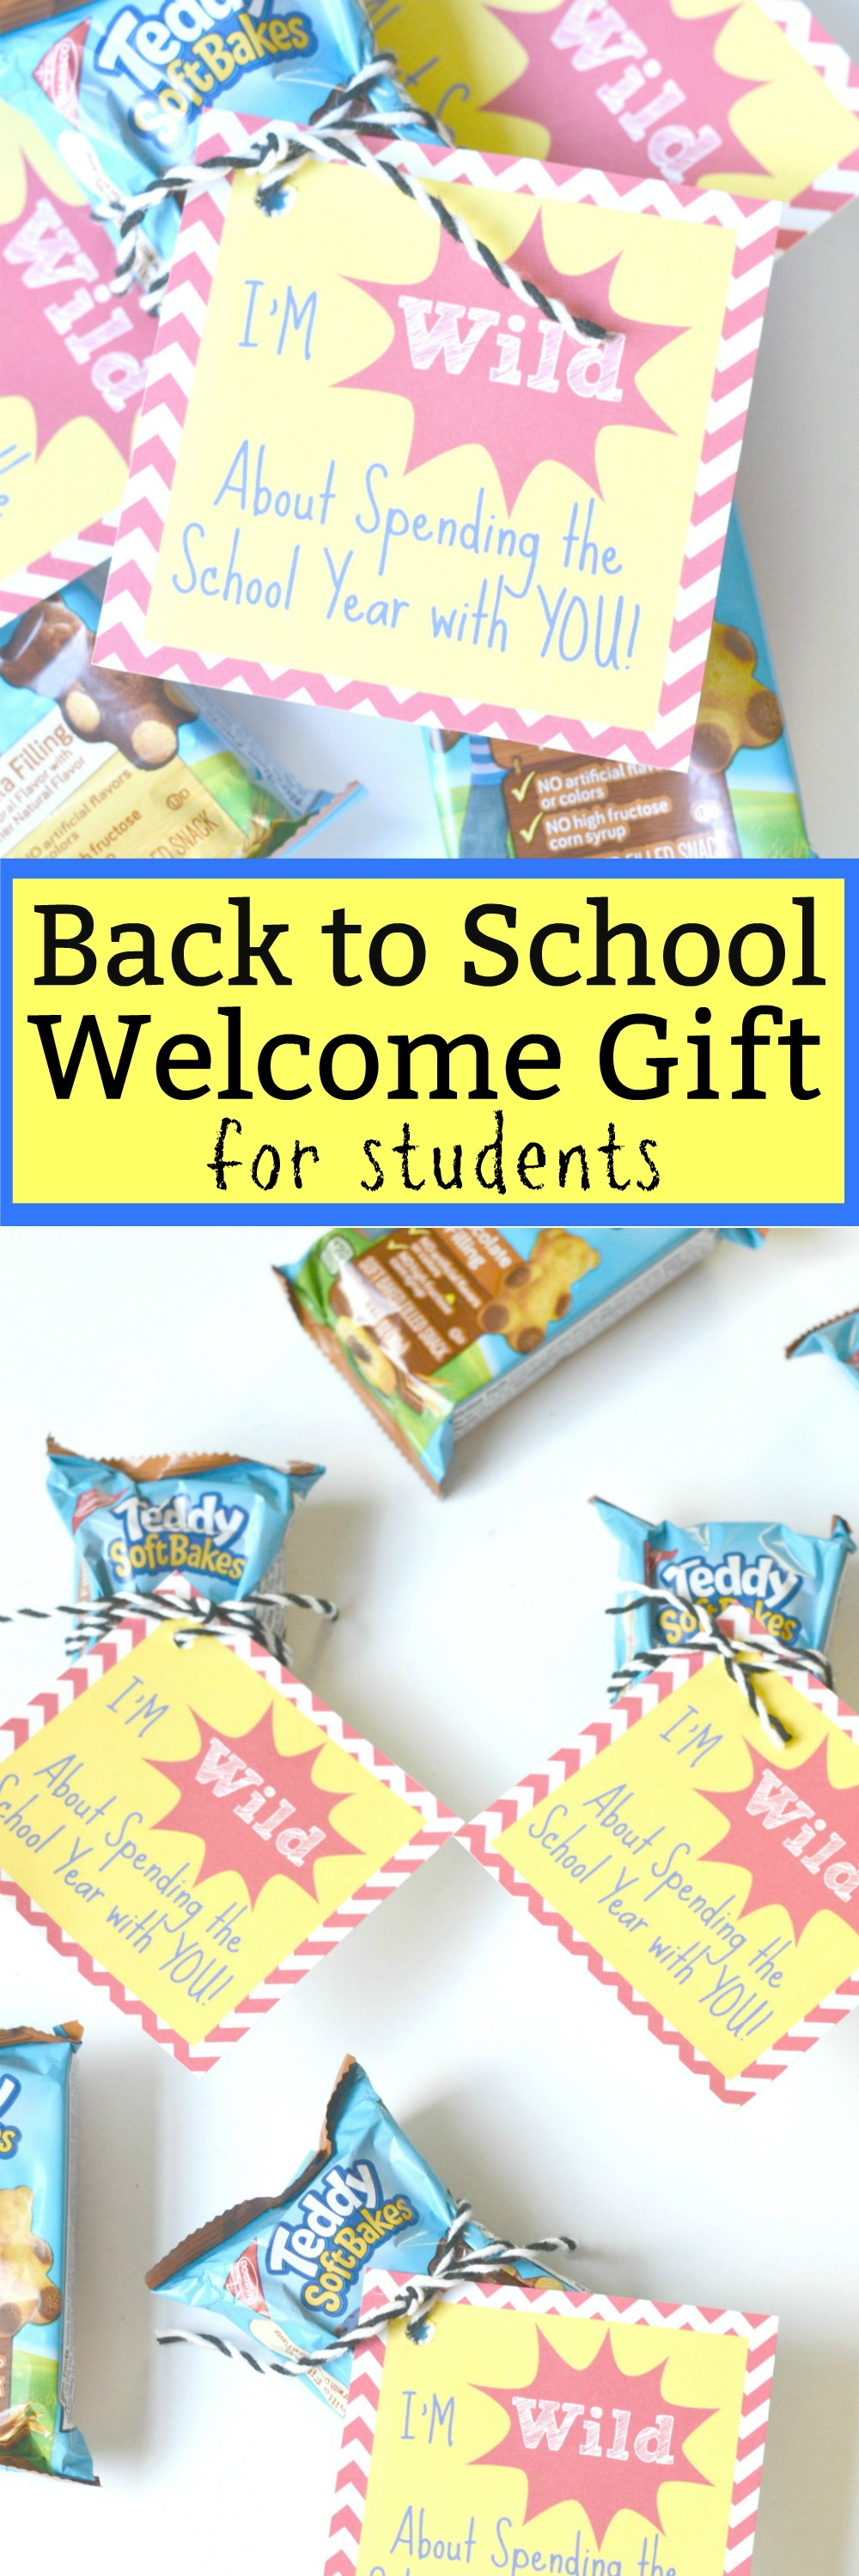 Back to School Welcome Gift for Students